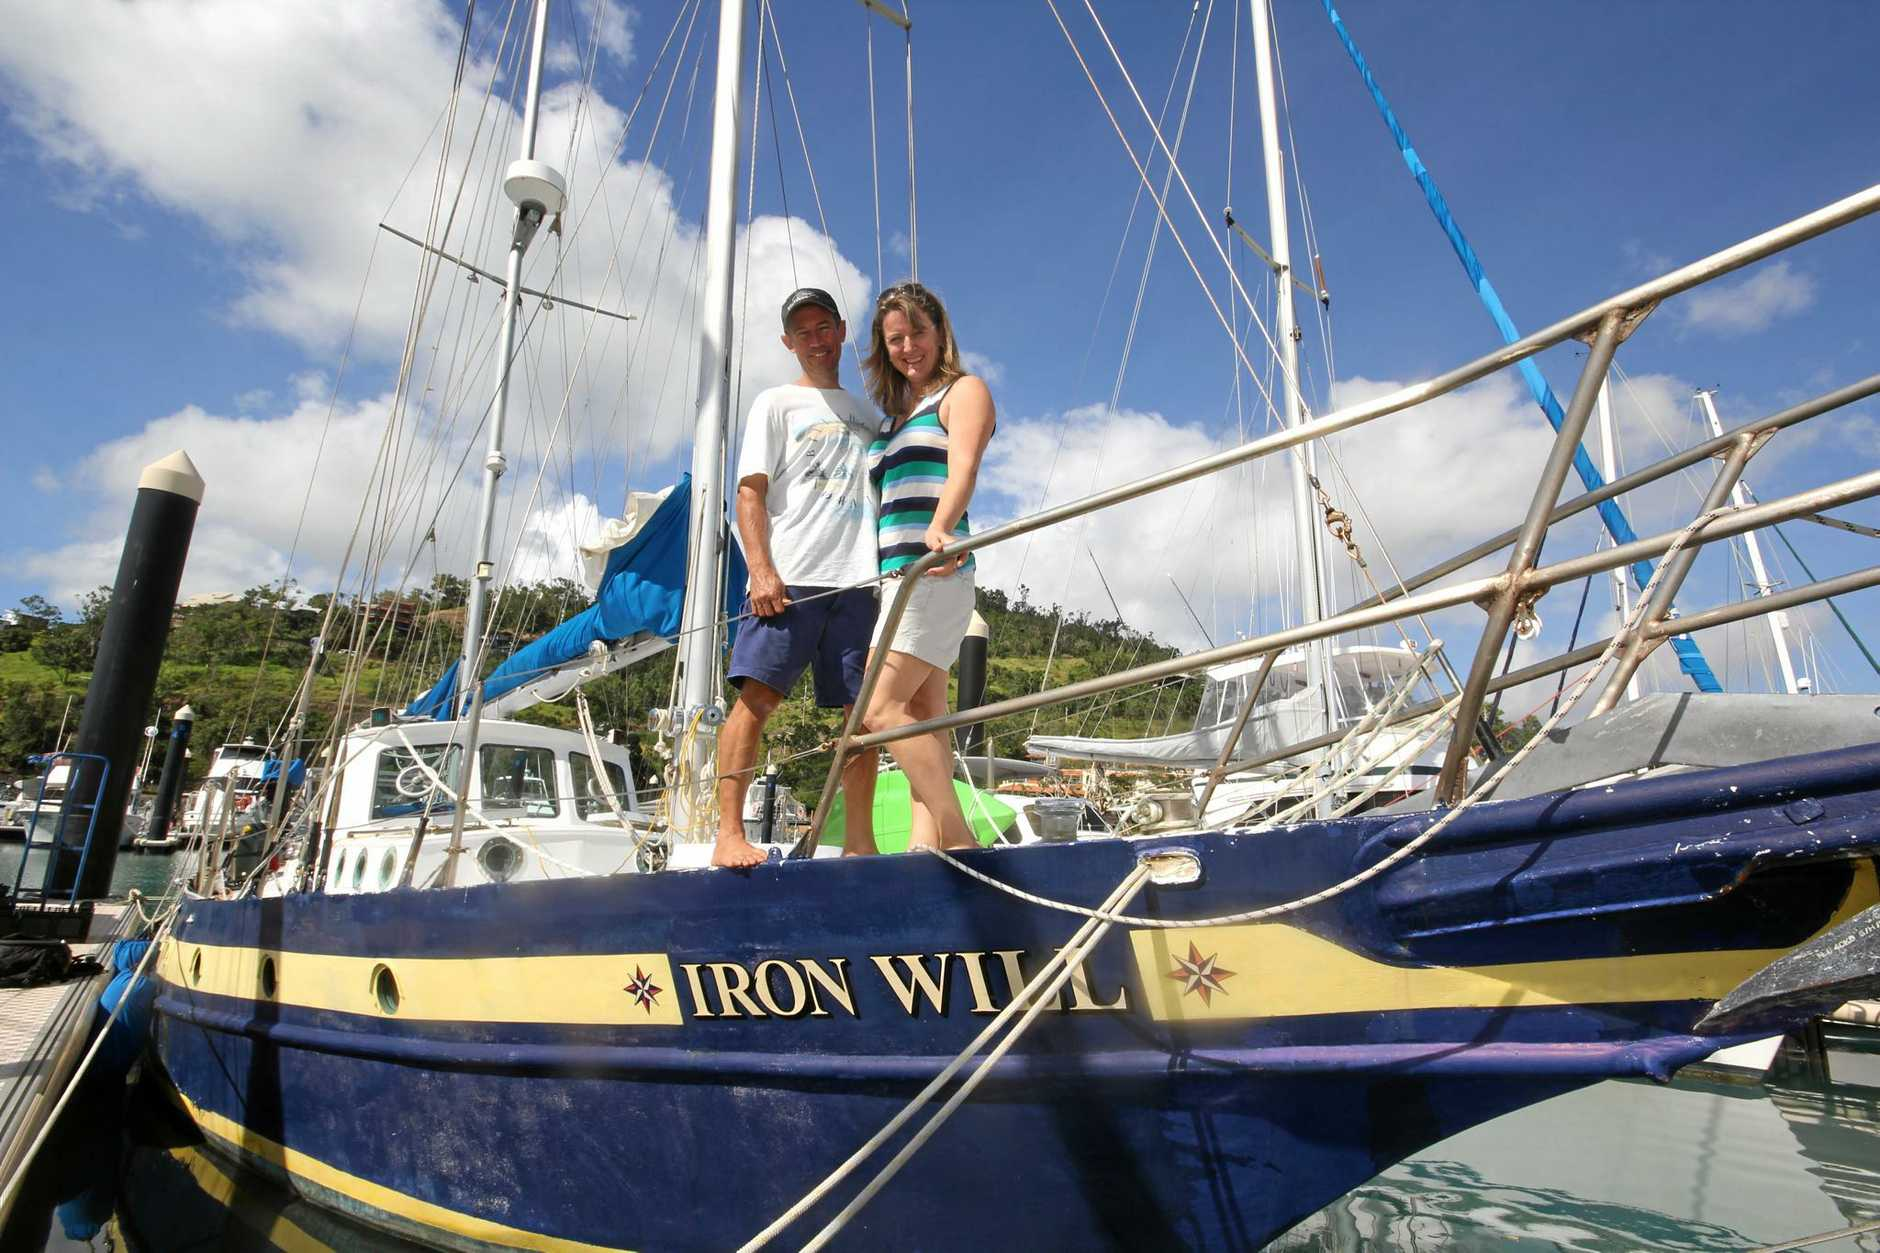 Iron Will currently berthed at the Abell Point Marina in the Whitsundays.